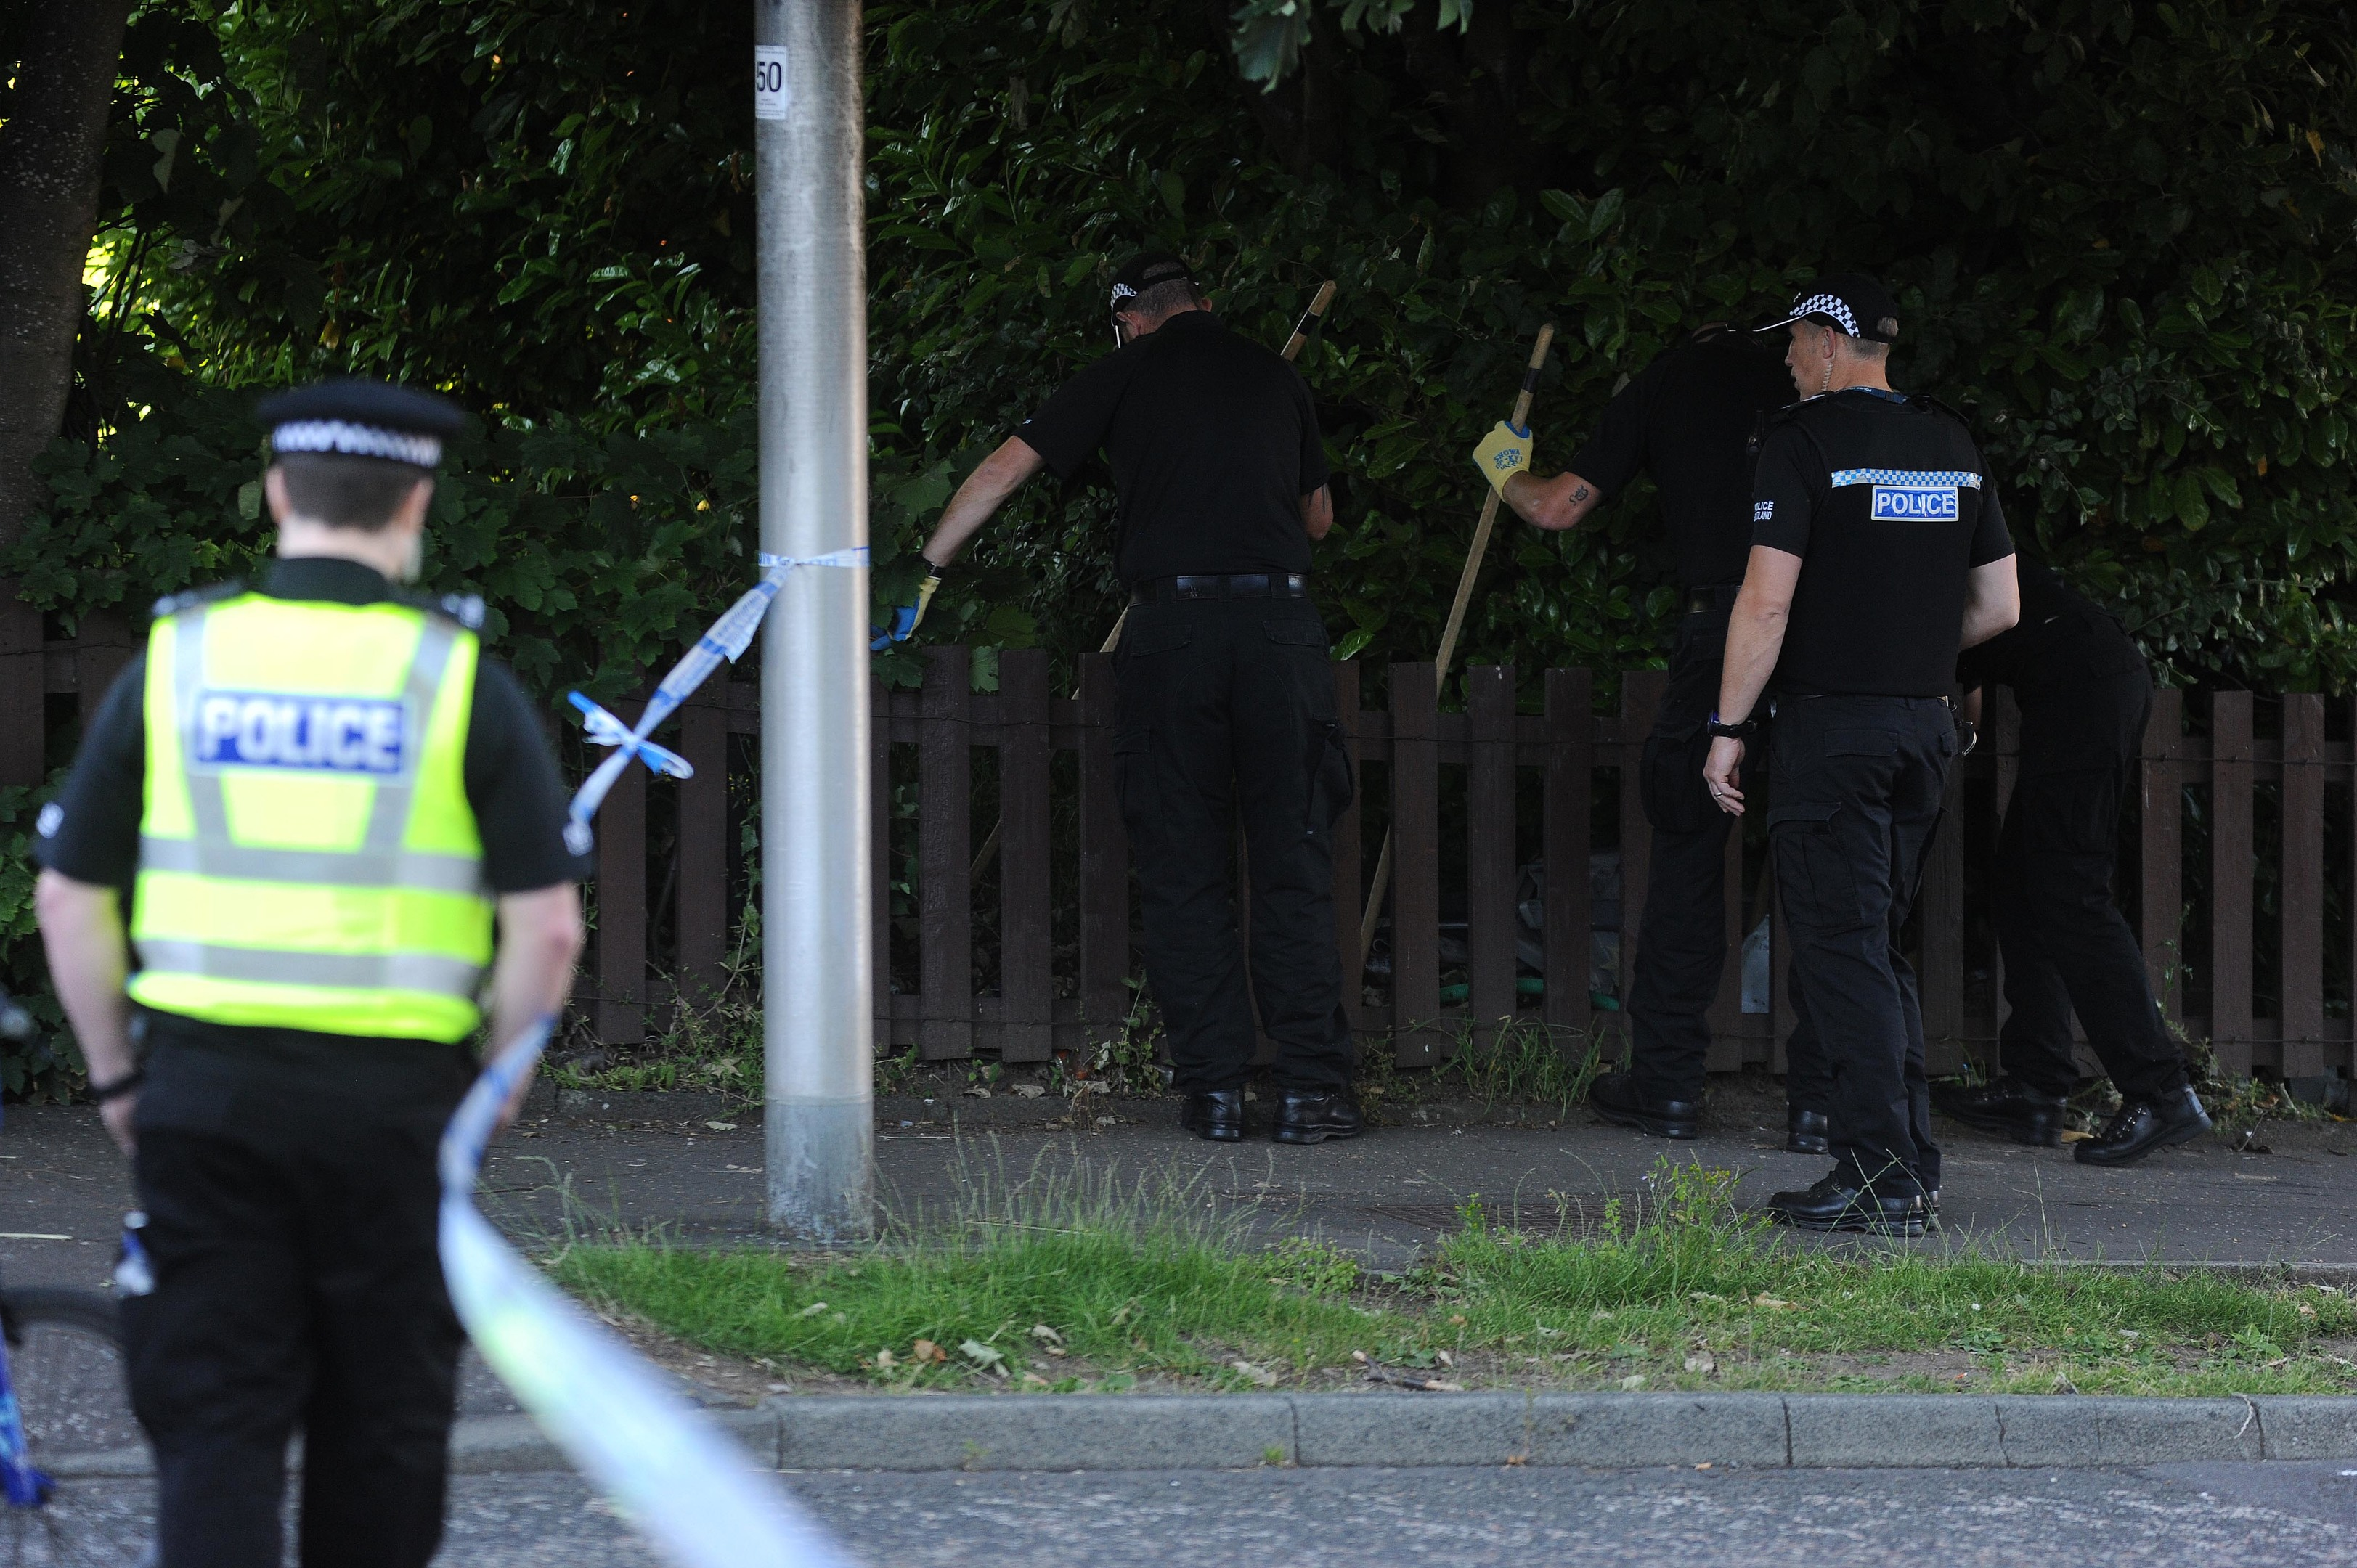 The police search team in Kirkcaldy's Valley Gardens following the alleged incident.